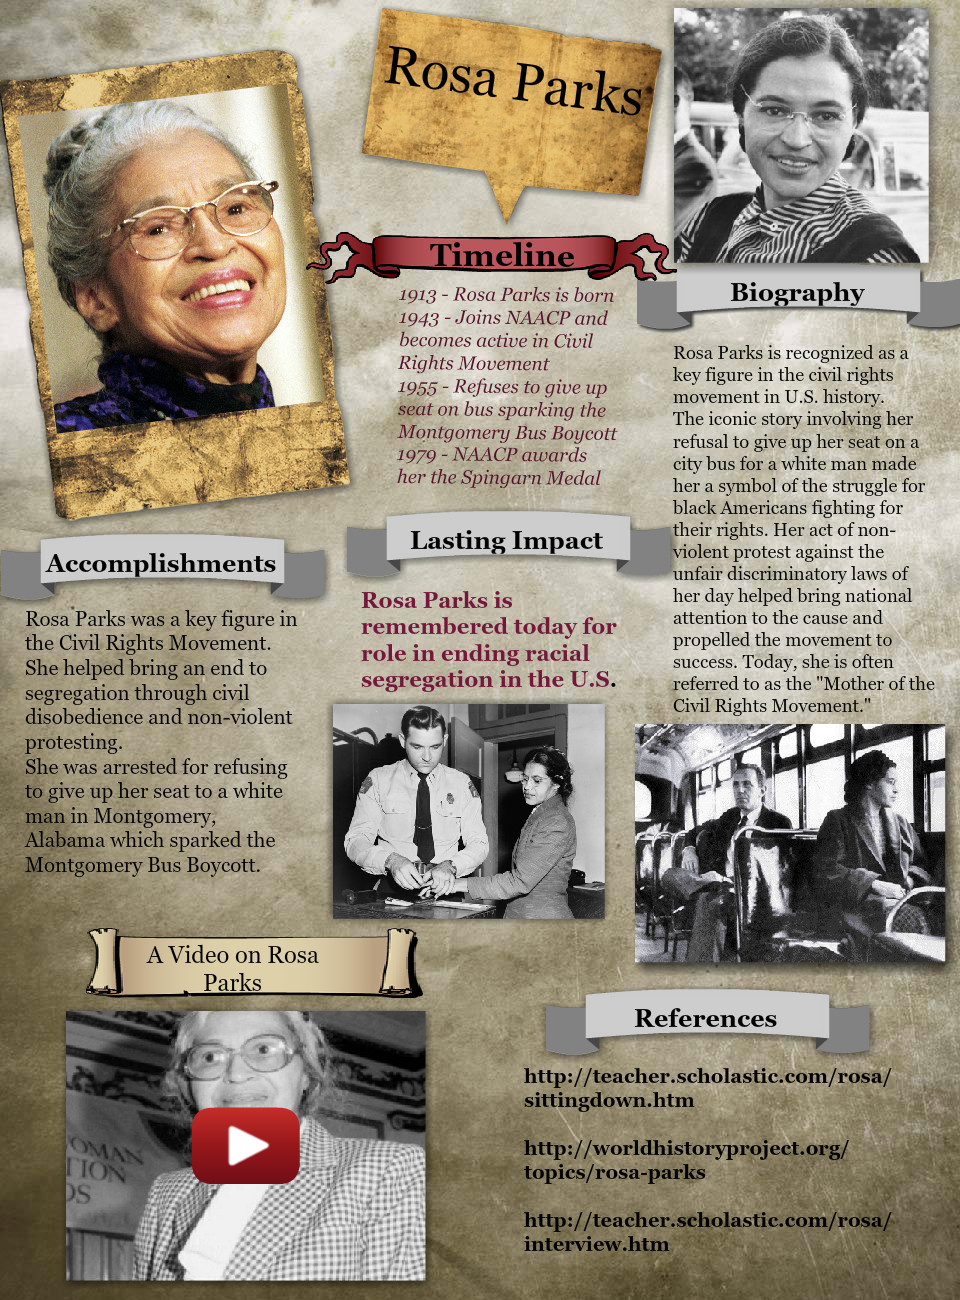 A Biography on Rosa Parks